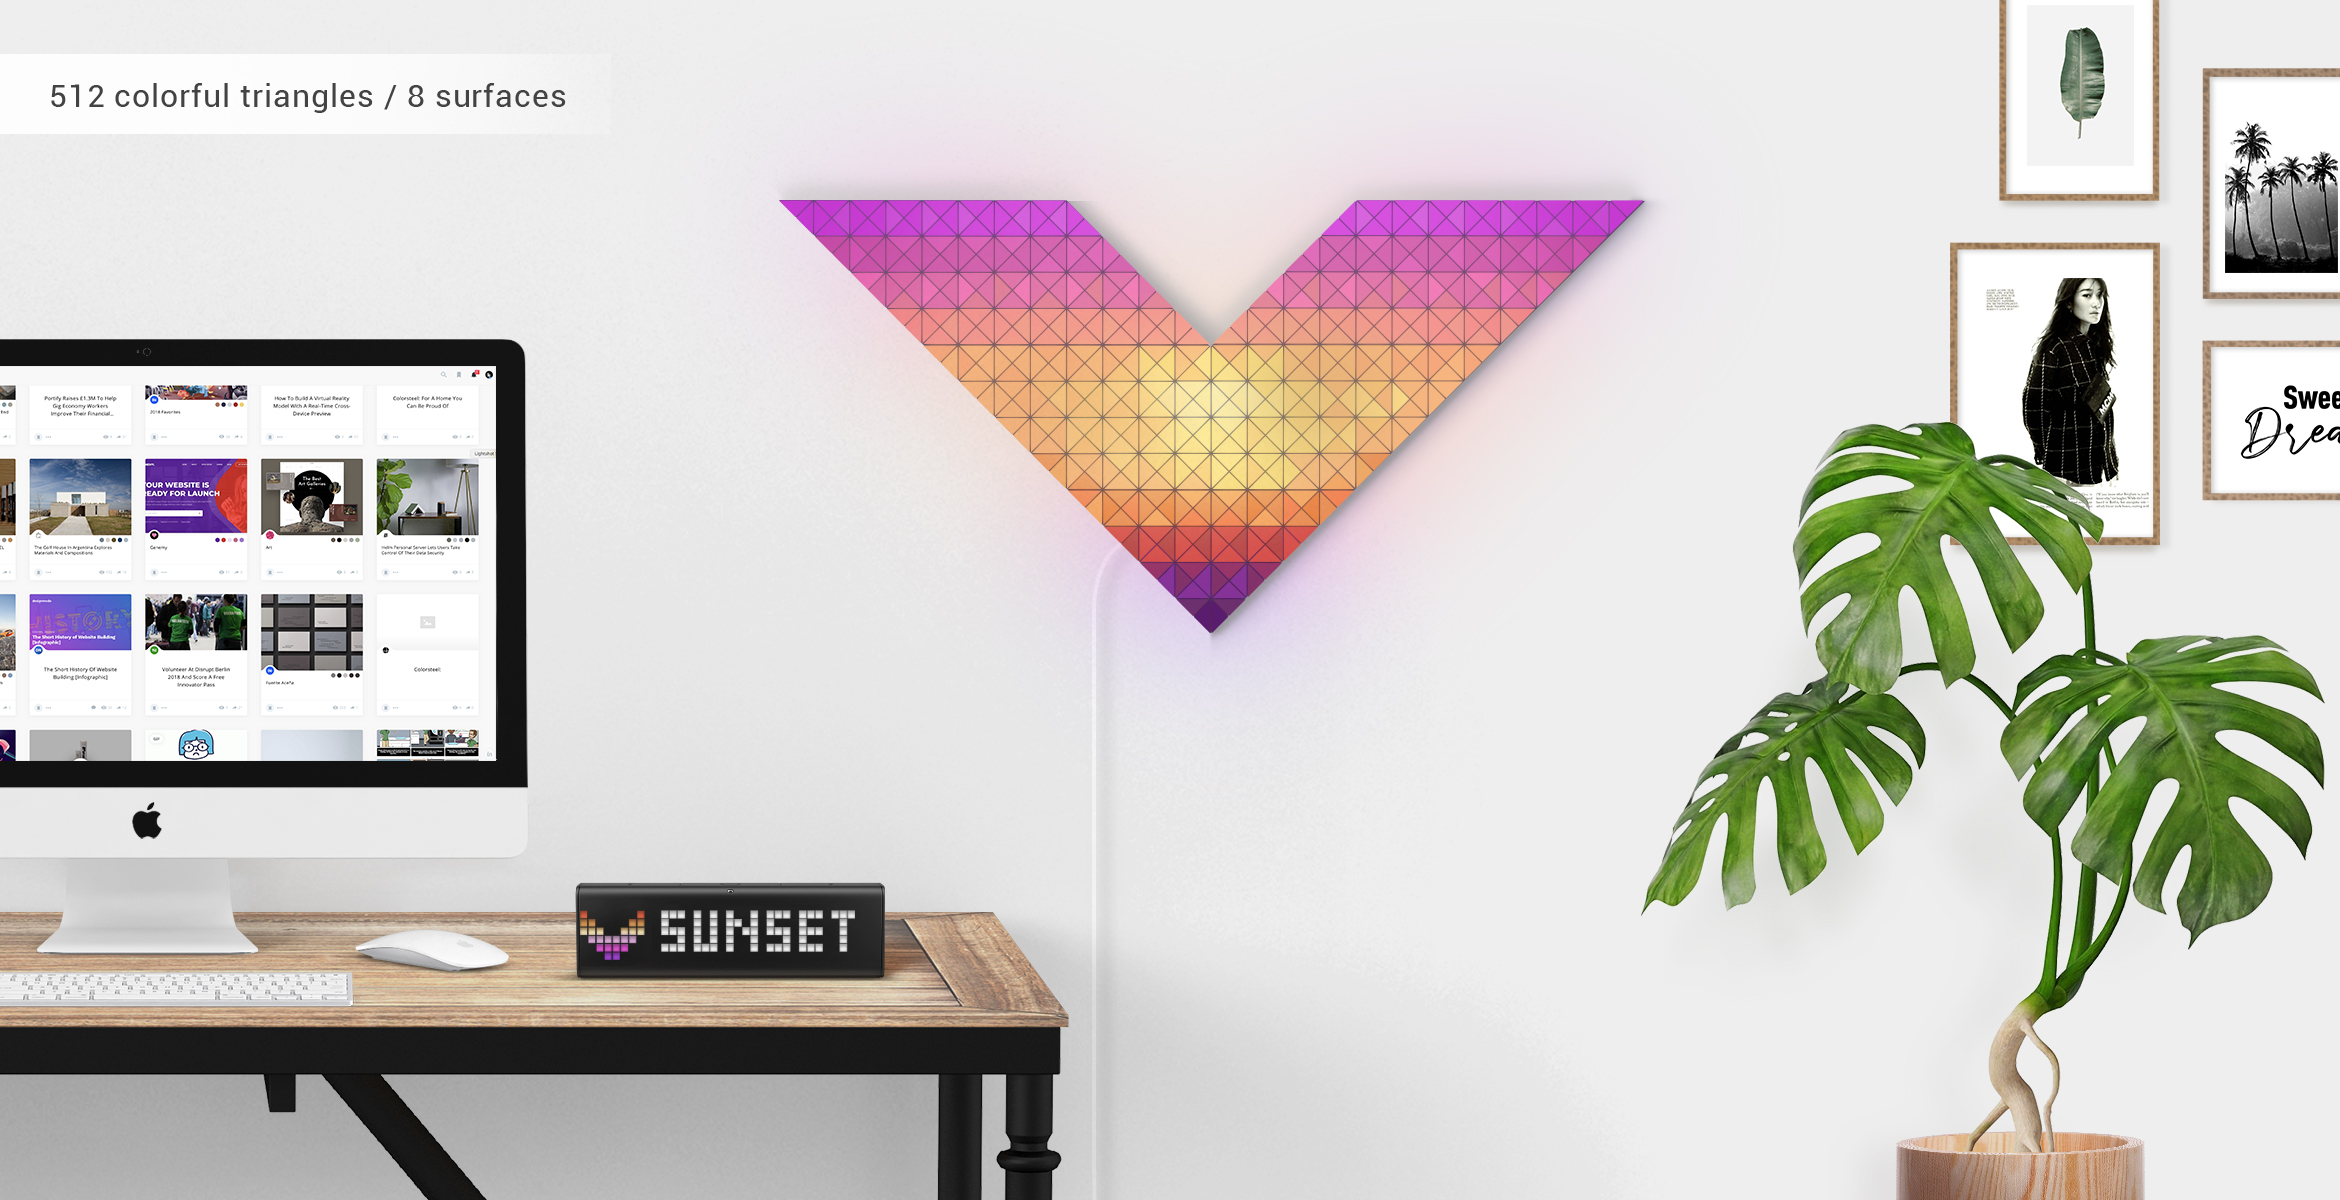 Vendetta shape, assembled from 8 LaMetric SKY smart light surfaces, complements the desk setup and shows sunset light effect